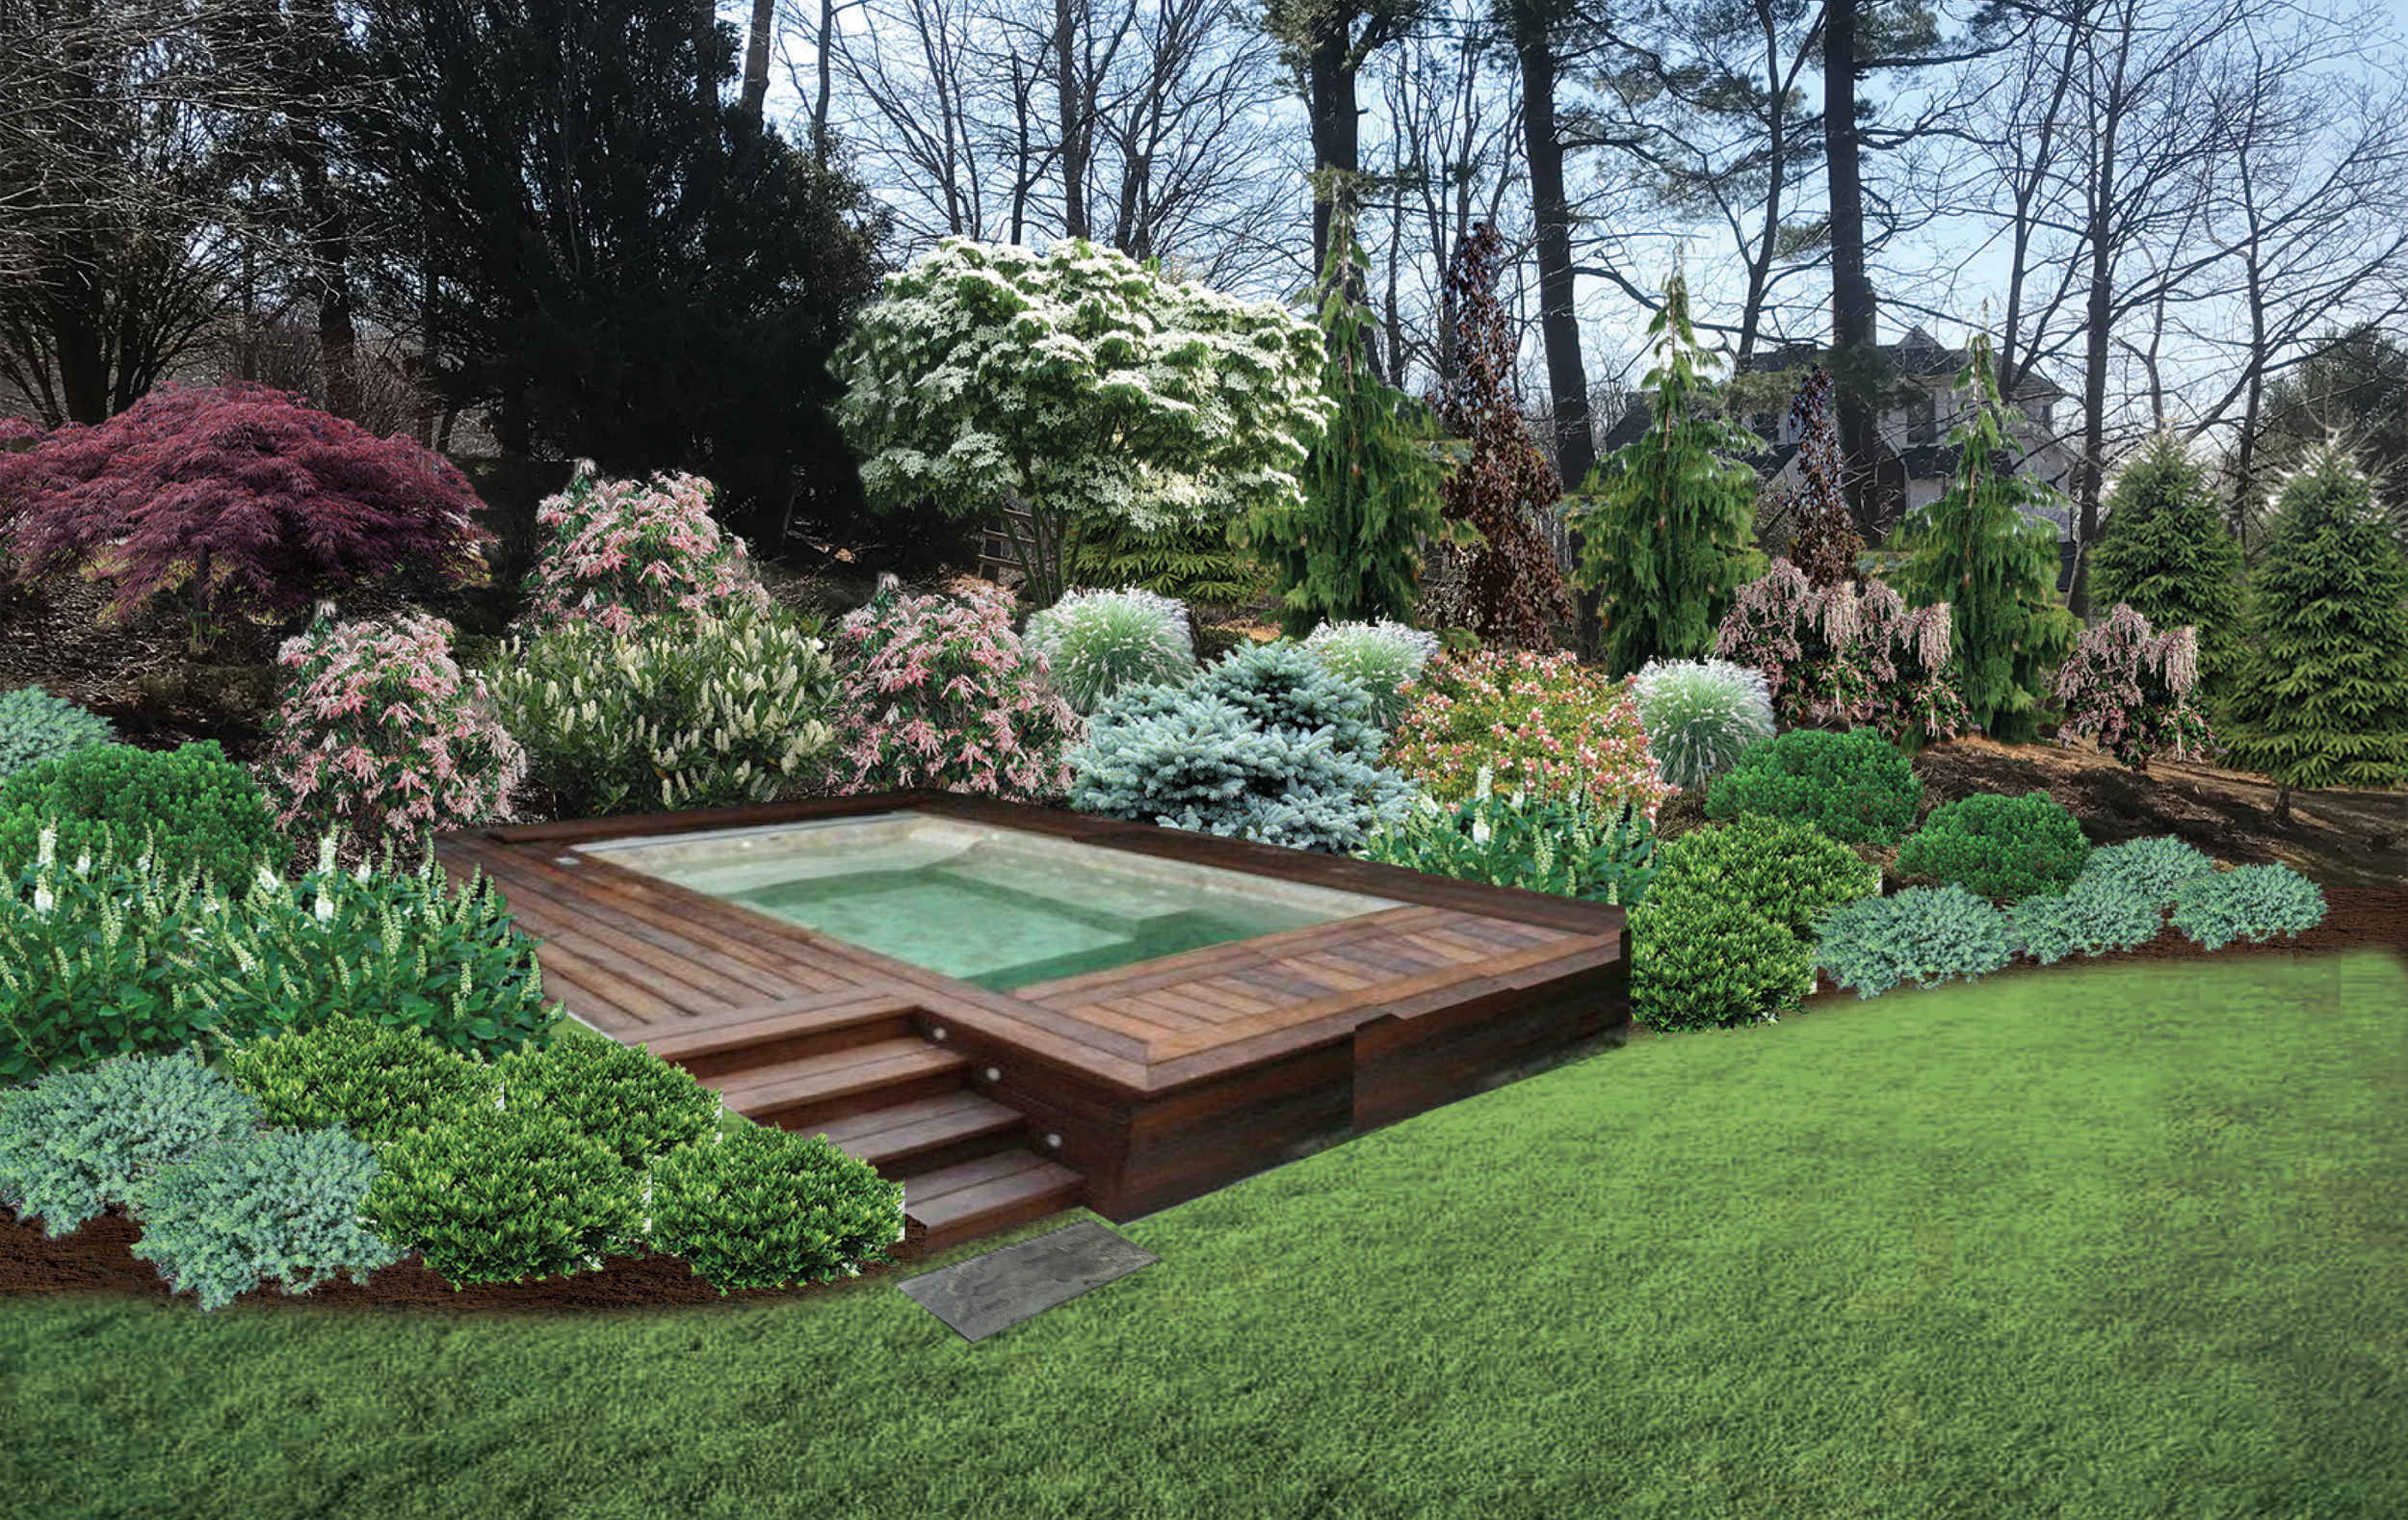 landscape-design-deck-hot-tub-jacuzzi-plantings.png